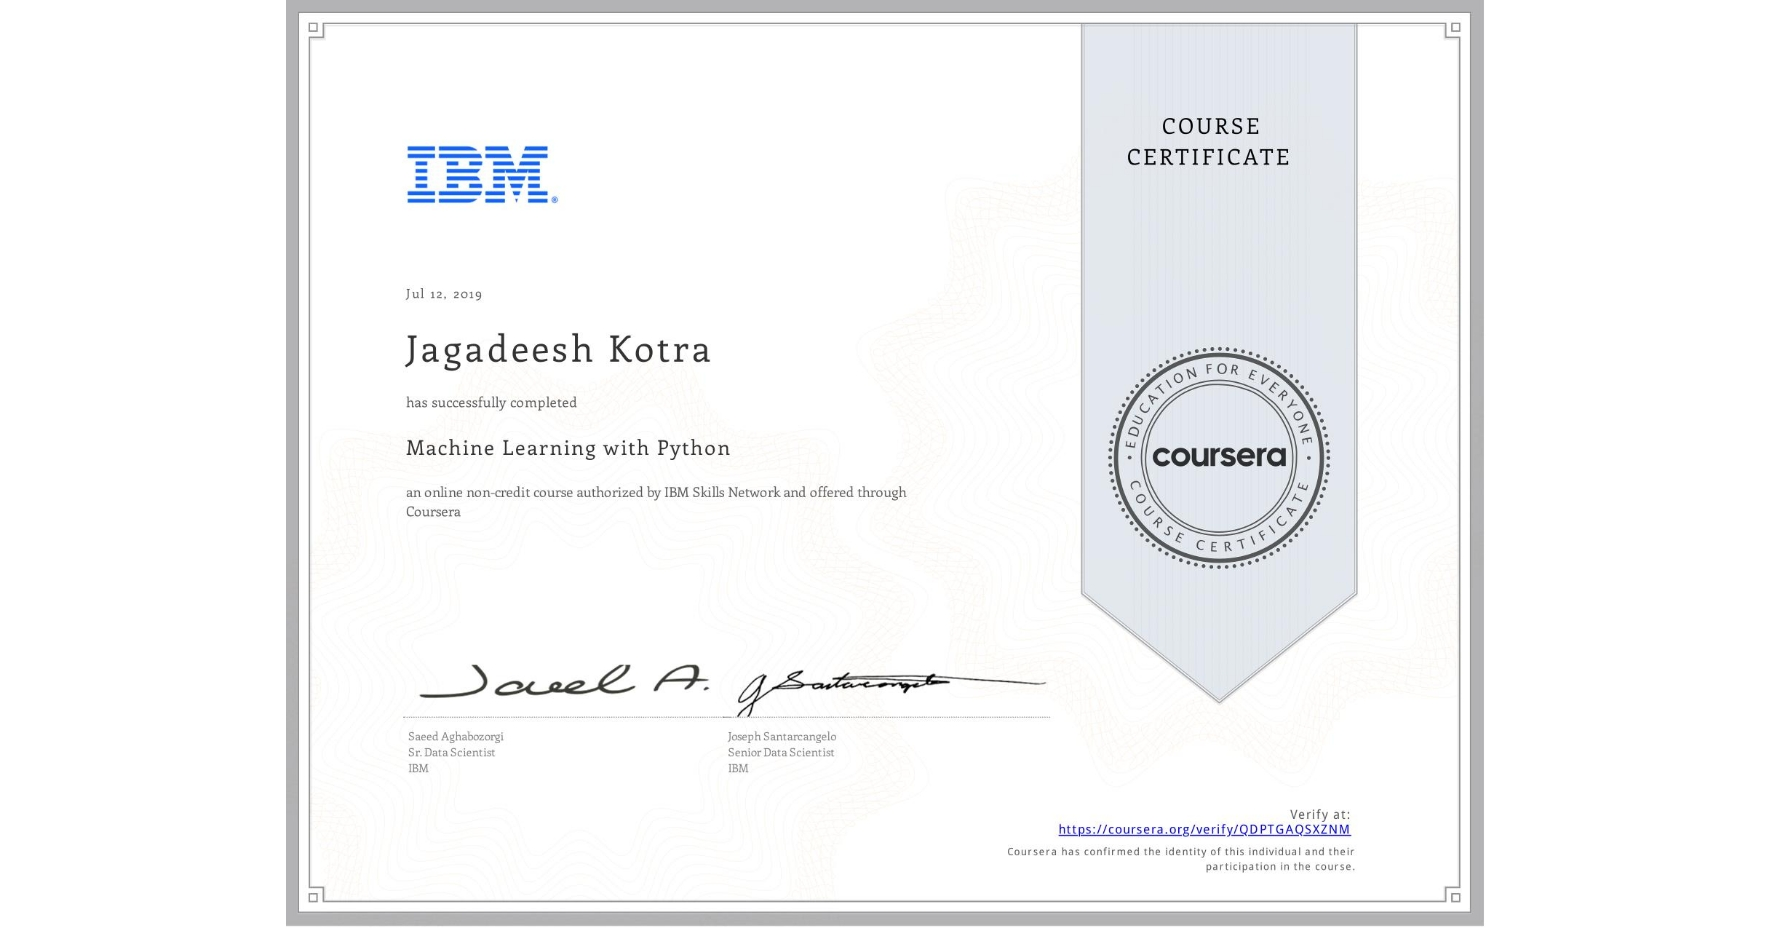 View certificate for Jagadeesh Kotra, Machine Learning with Python, an online non-credit course authorized by IBM and offered through Coursera